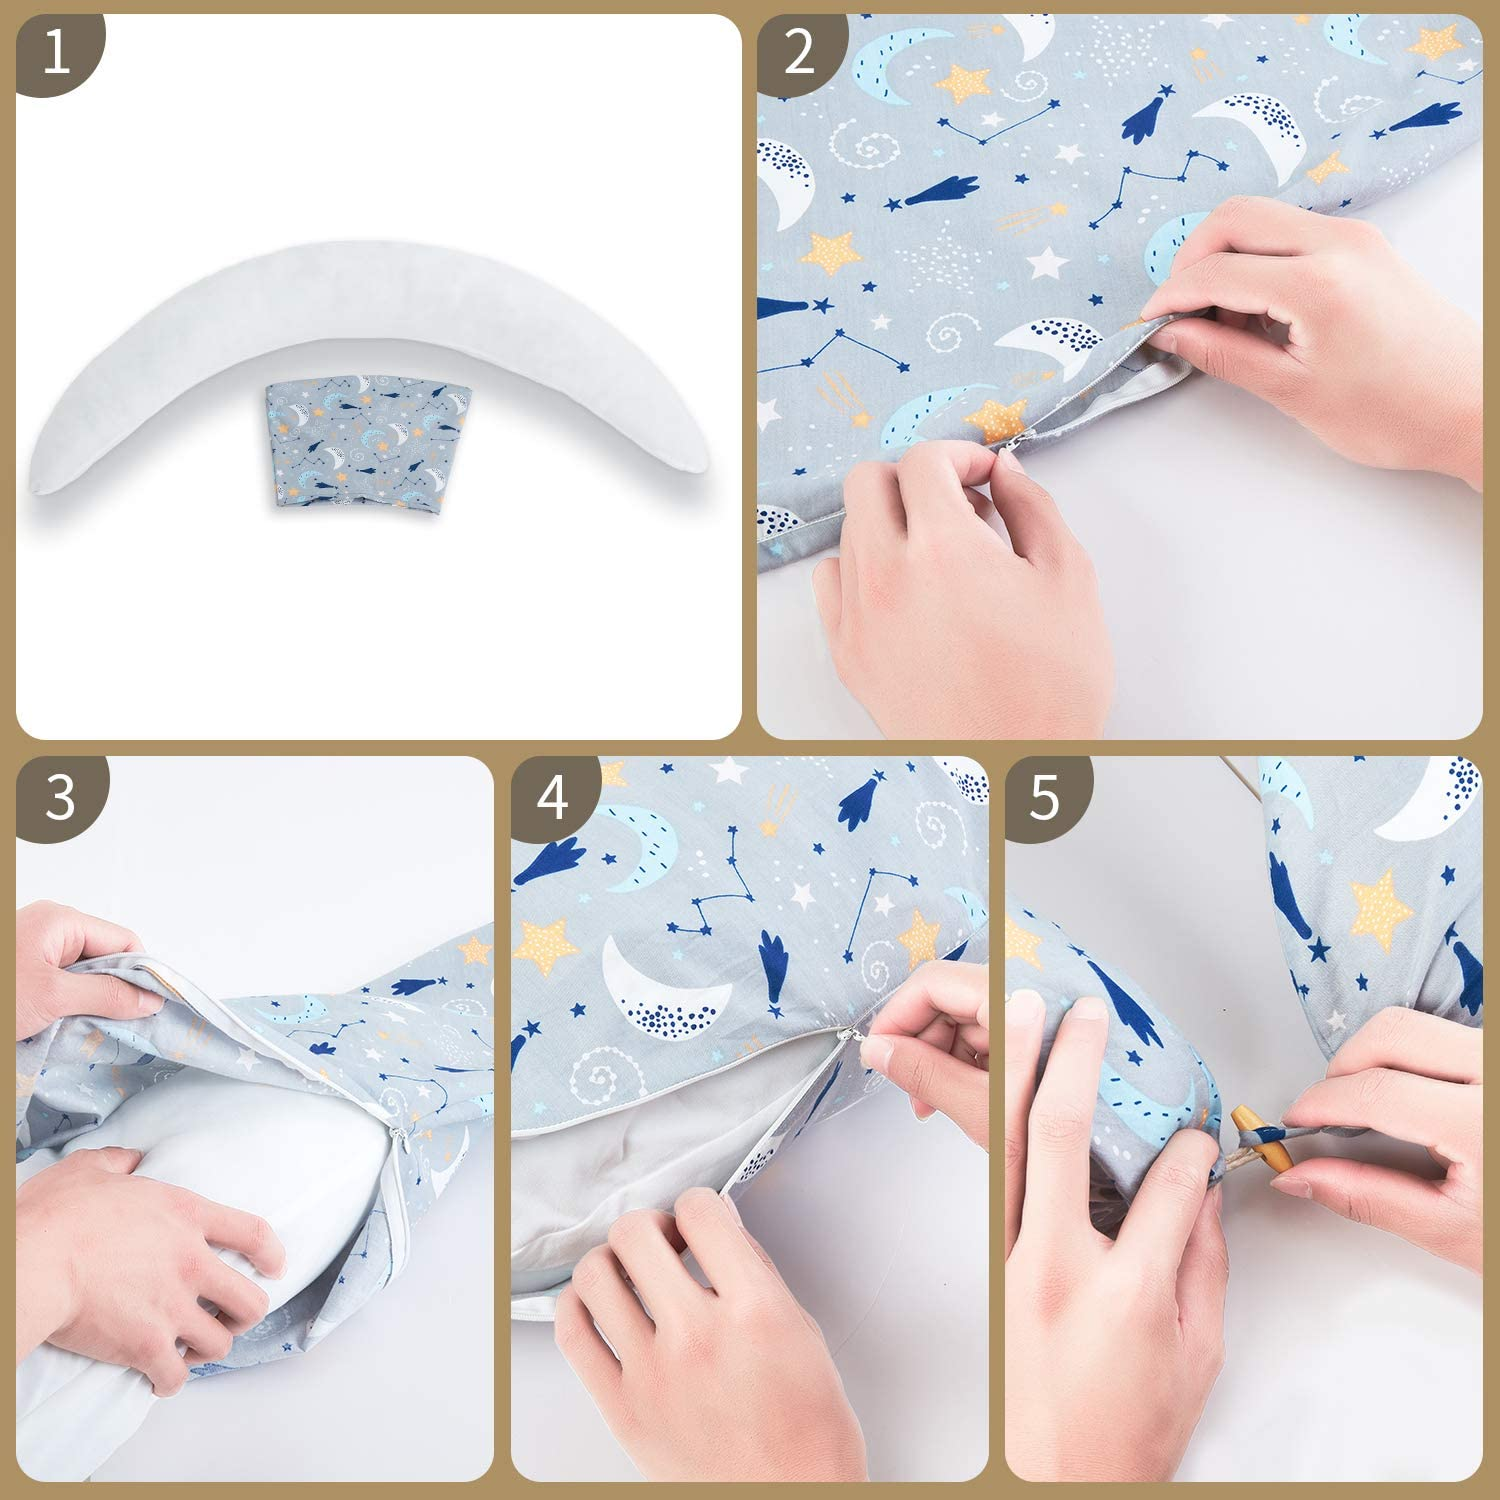 C-Shaped Pillow with 100/% Cotton Removable Cover /& Inner Cushion HOMBYS Pregnancy Pillows Multifunctional Maternity Body Pillow for Sleeping Breastfeeding Nursing /& Baby Nest